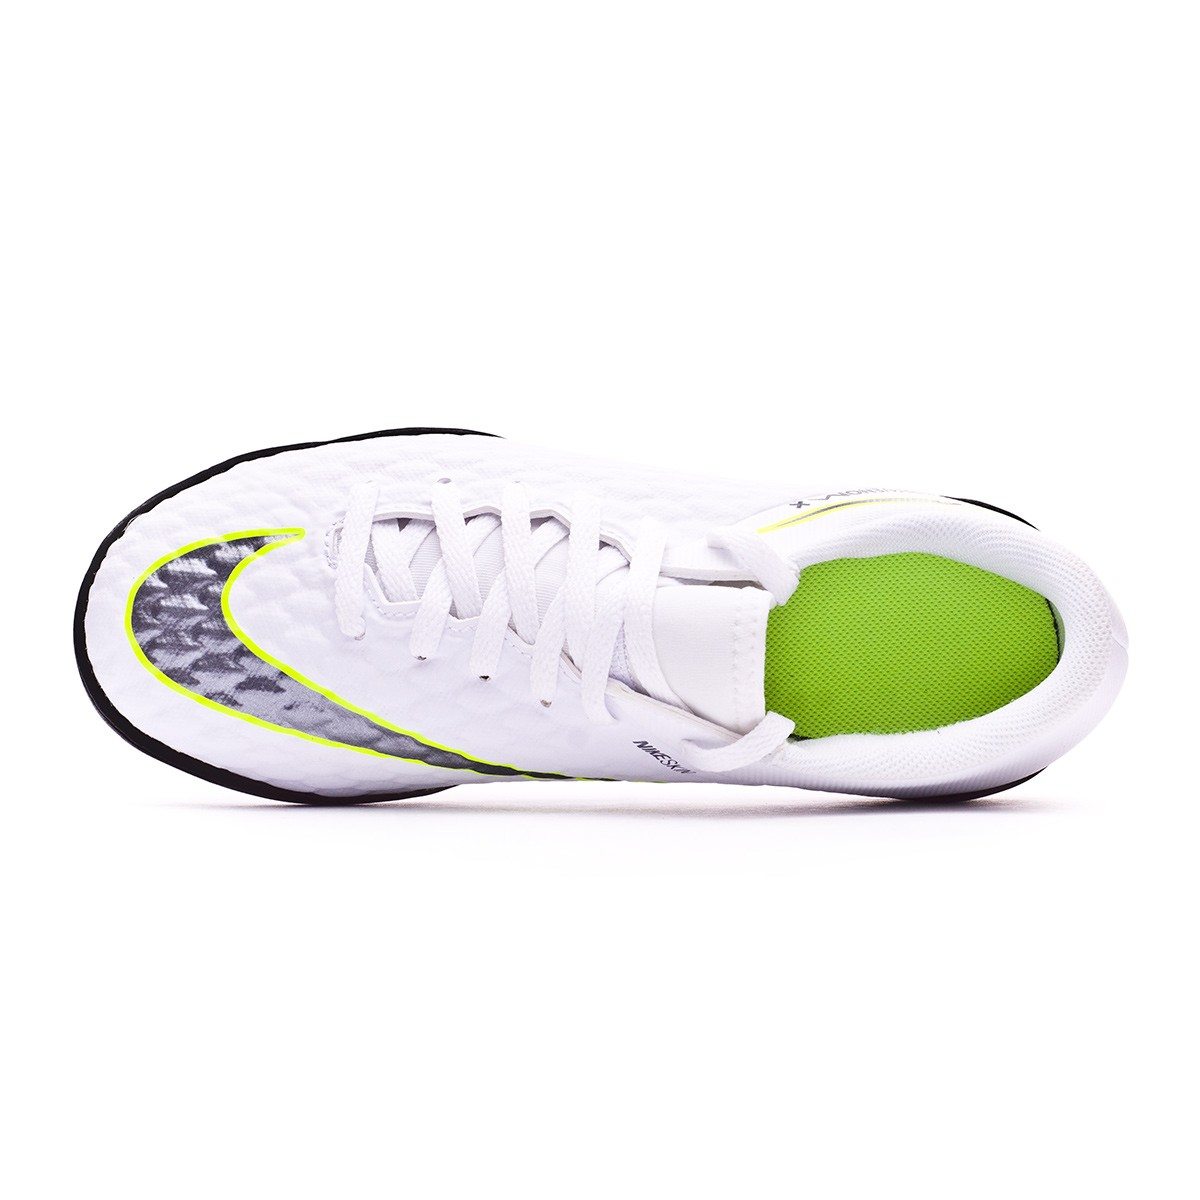 hot sale online cb03d ed51c Zapatilla Hypervenom PhantomX III Academy Turf Niño White-Metallic cool  grey-Volt-Metallic cool g